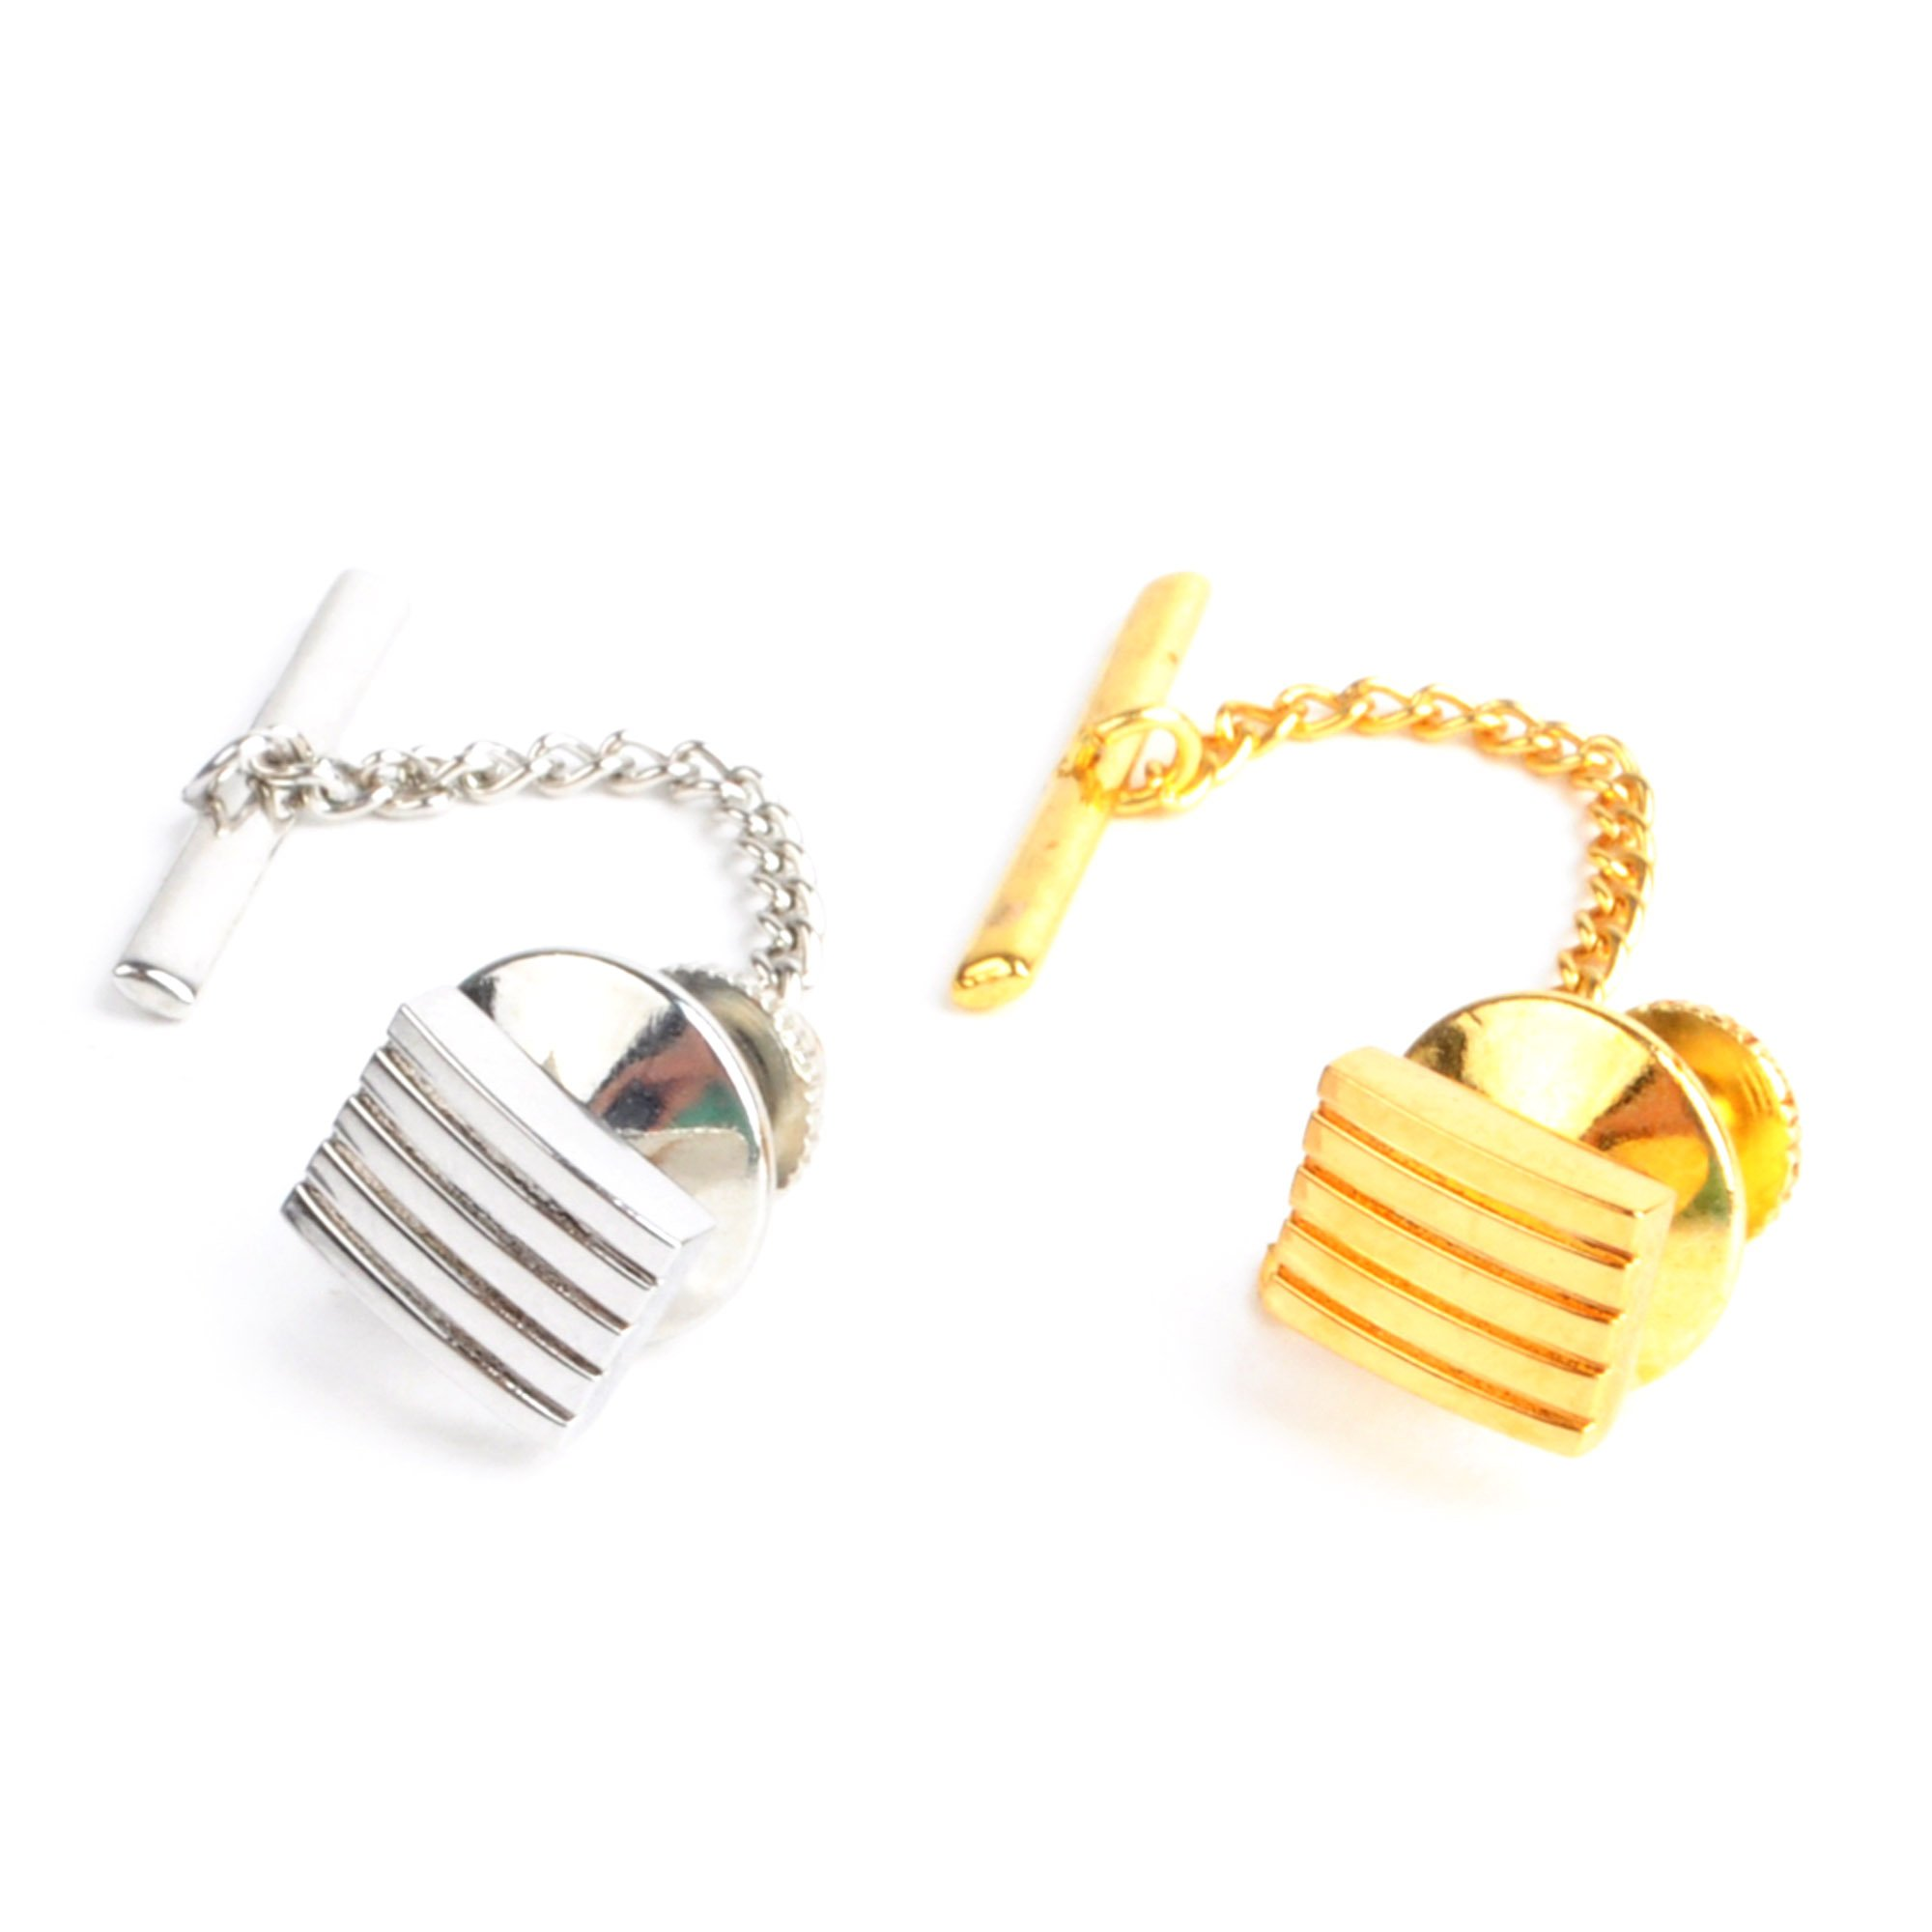 Striated Textured Squares Tie Tack Set for Men-2 Pack